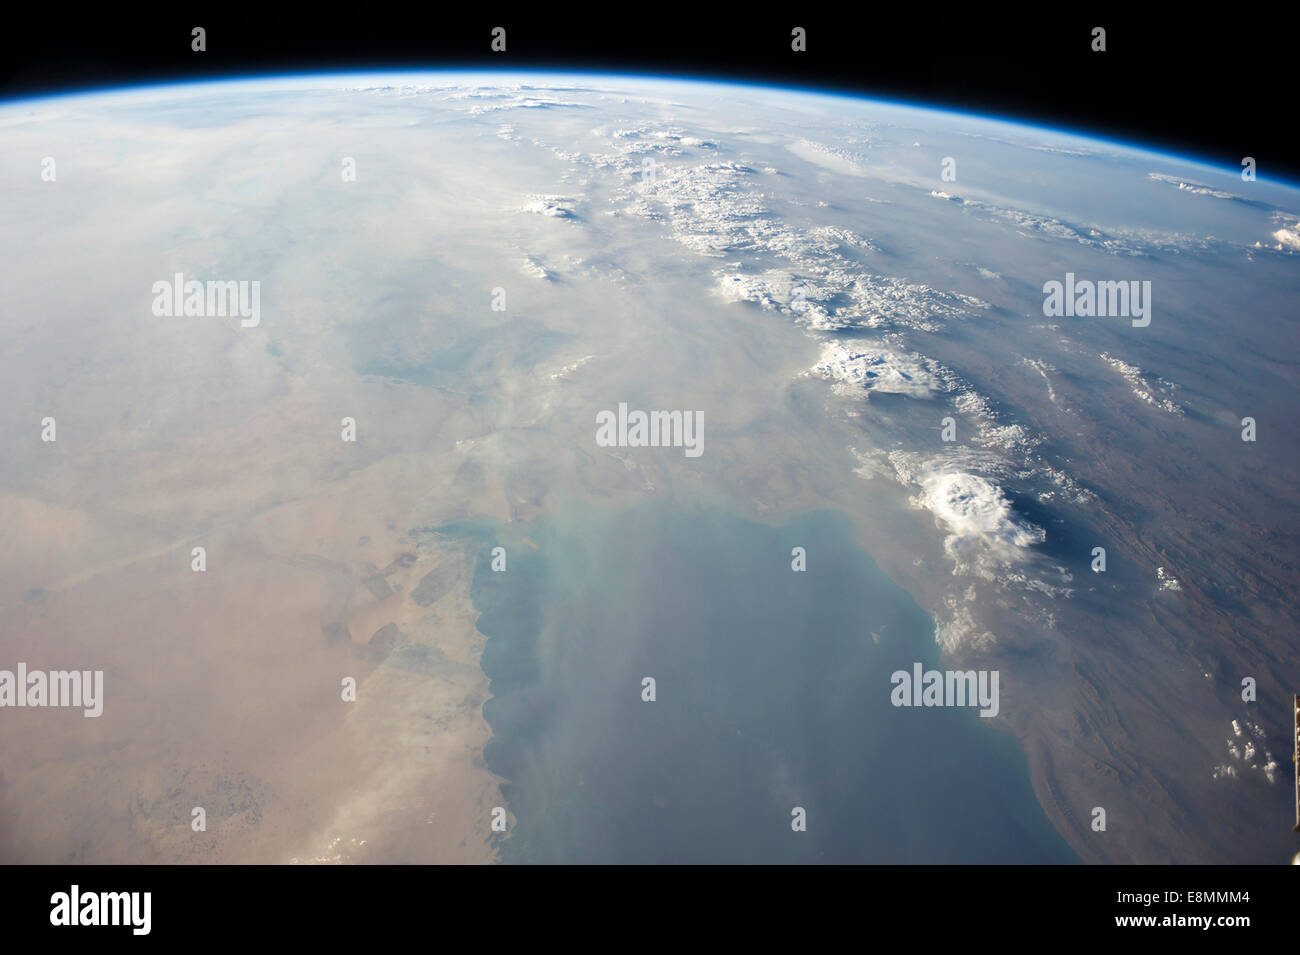 View from space showing the tropical blue waters of the Persian Gulf and then the dust-filled skies as a major dust - Stock Image